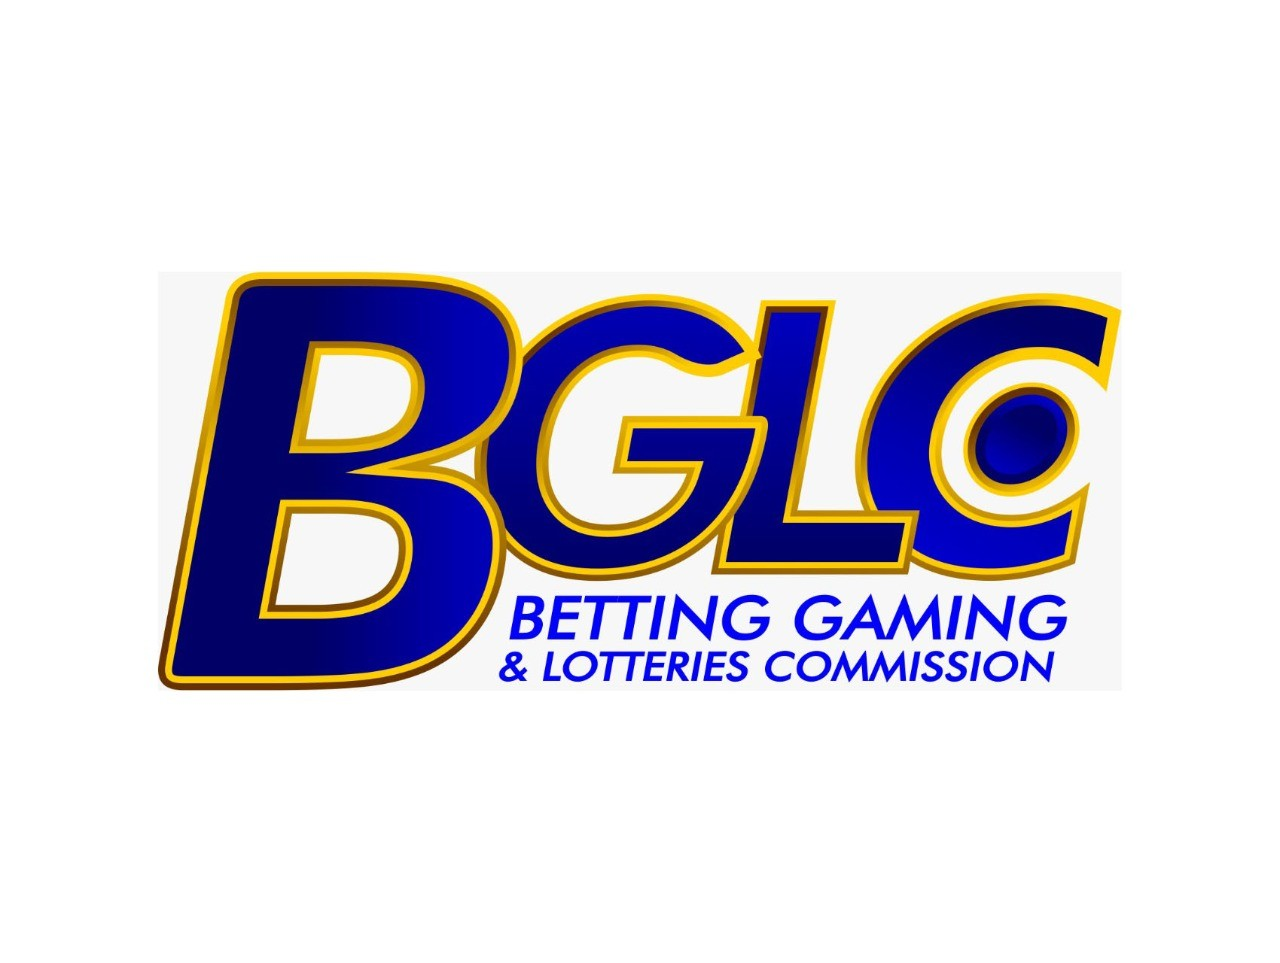 350 students attending tertiary institutions across Jamaica will receive the Betting, Gaming and Lotteries Commission (BGLC) Tertiary Education Grant for the next academic year.